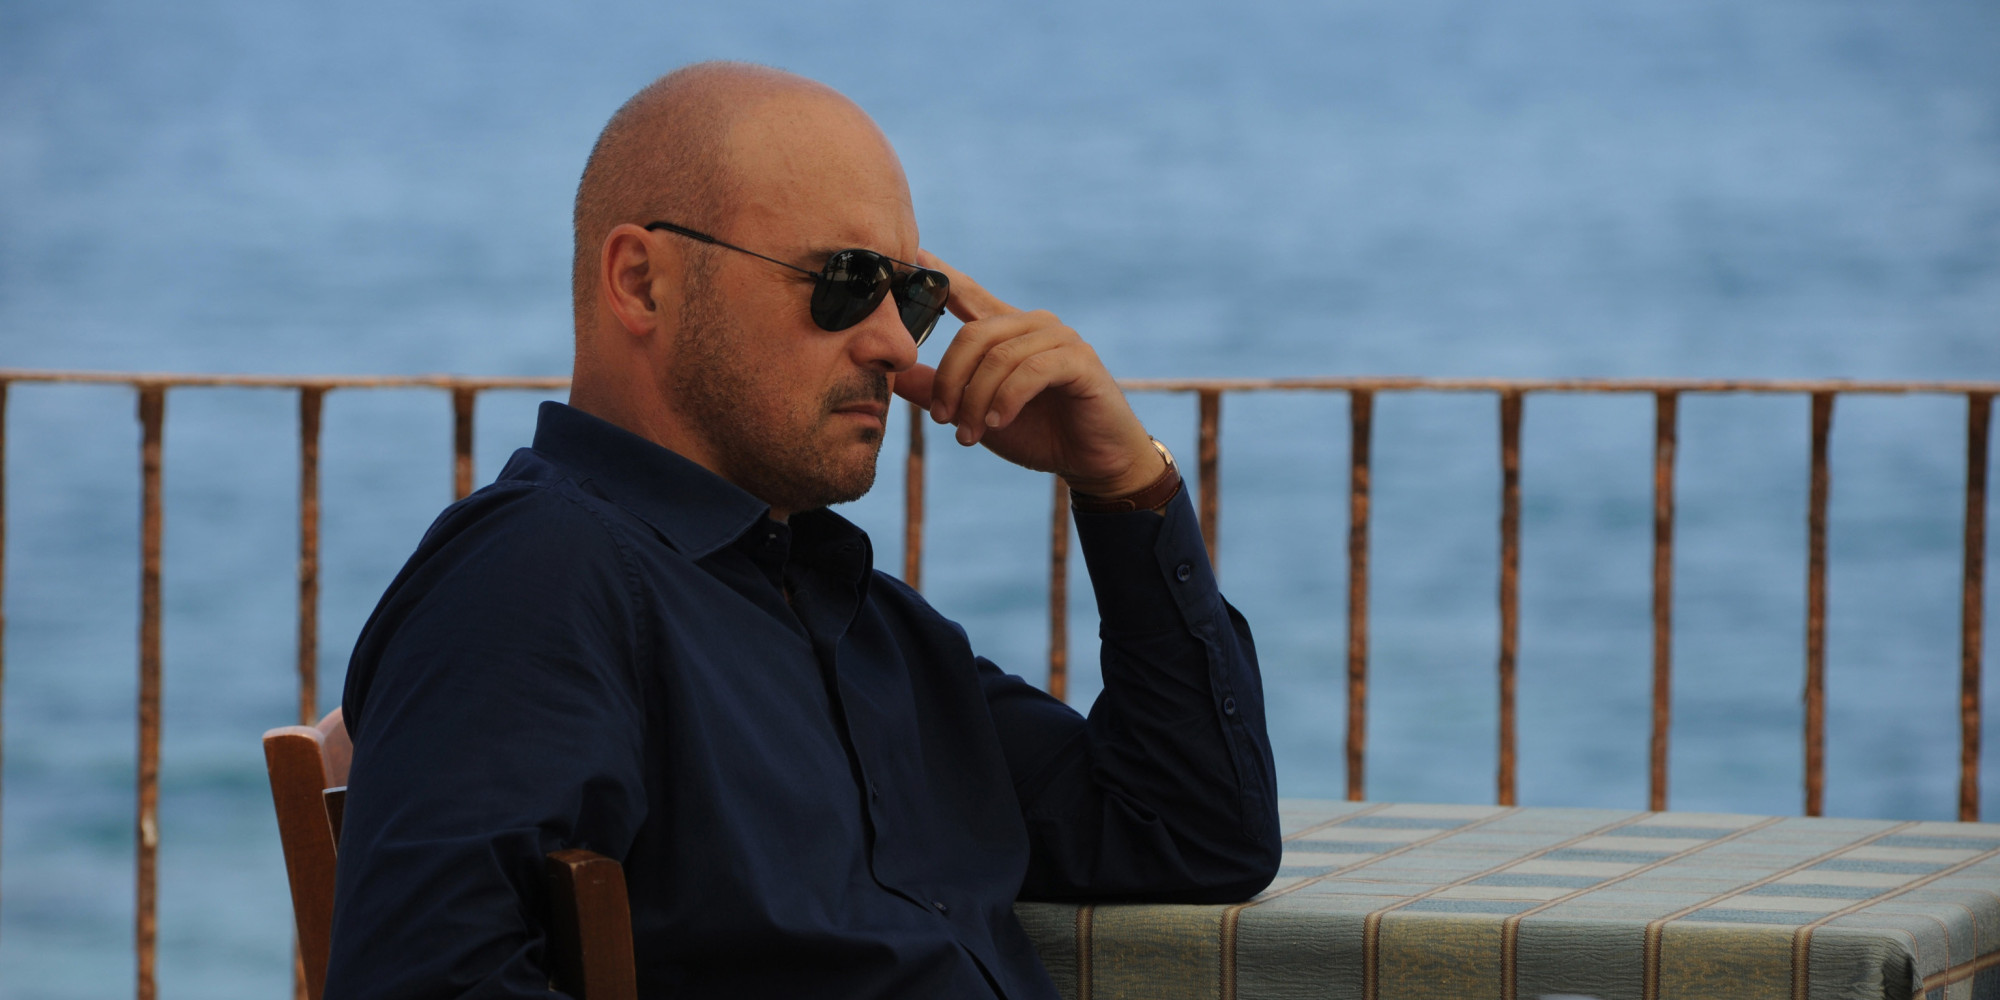 Record scores for Commissario Montalbano and the economic impact on the territory